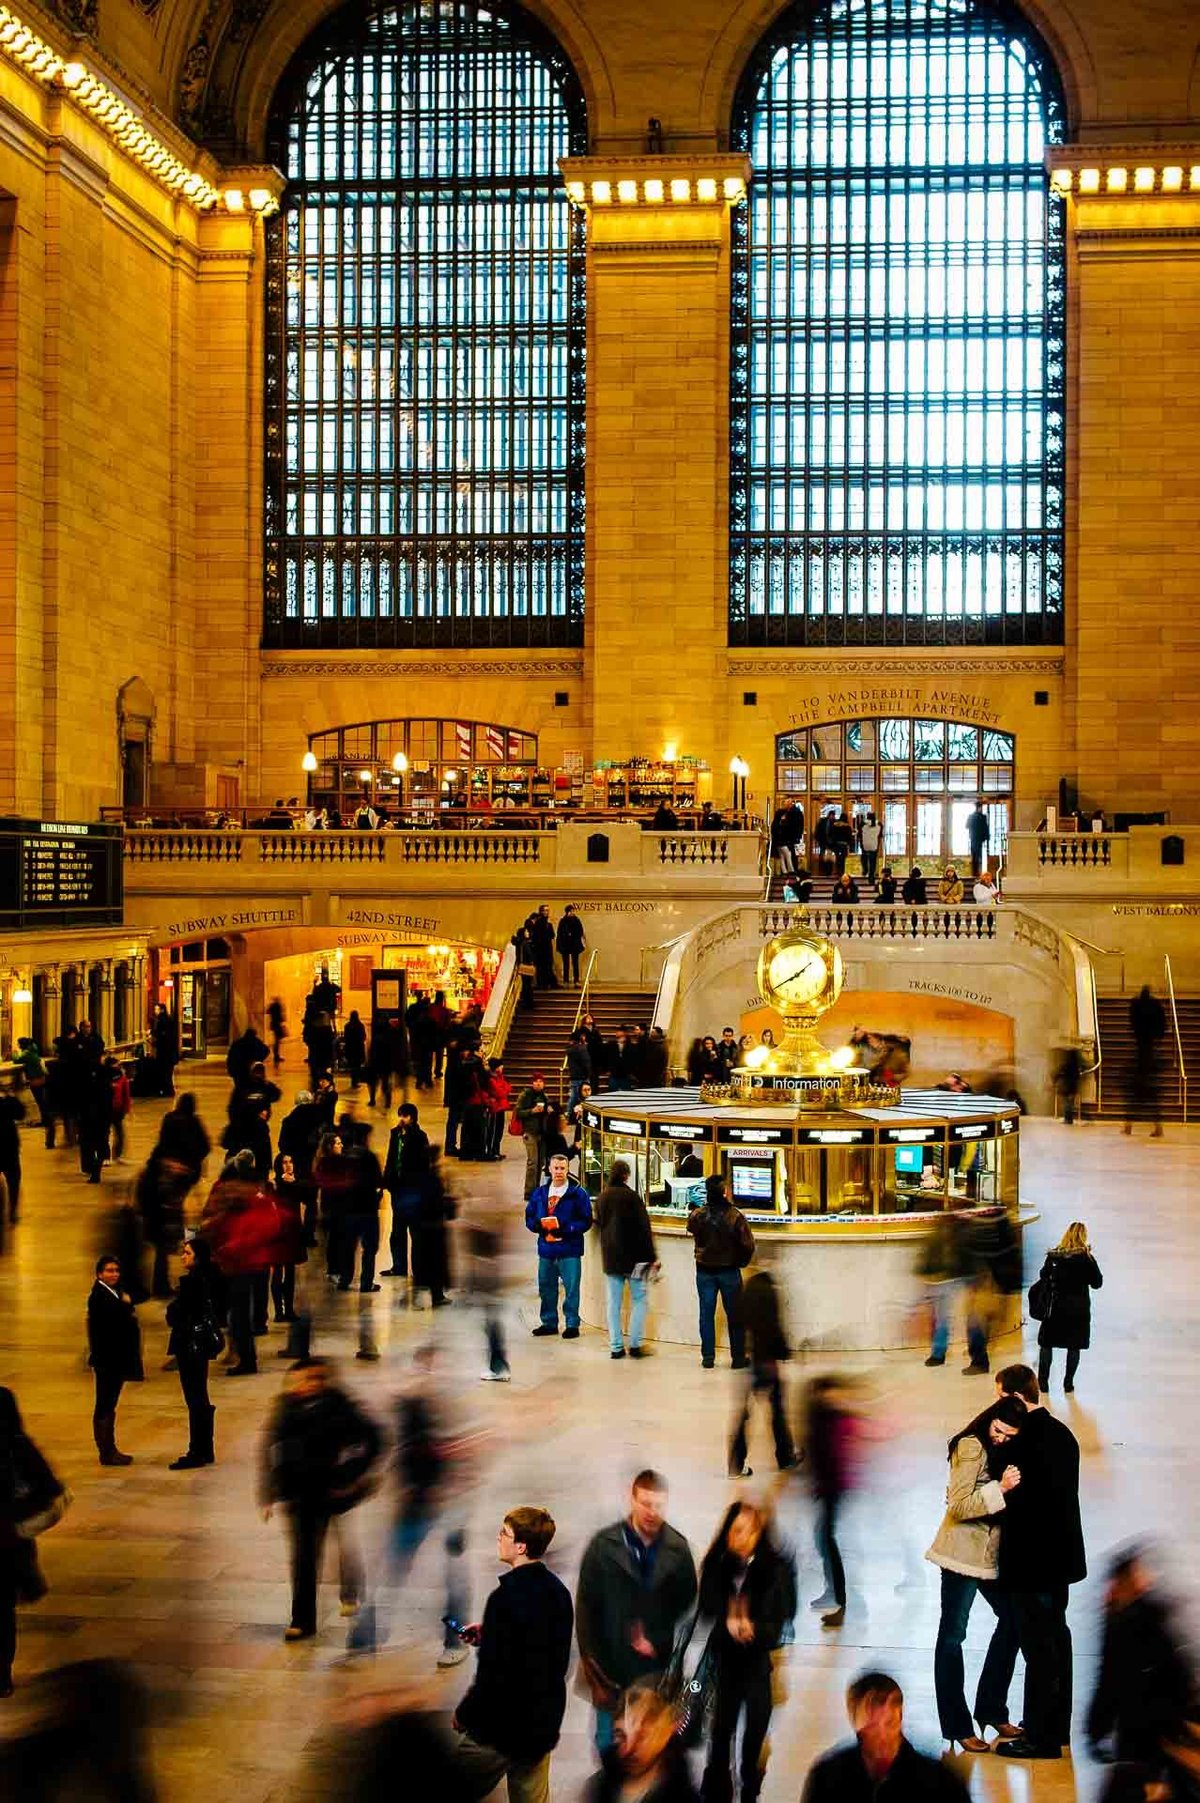 engagement photo at grand central station in nyc by stephane lemaire photography